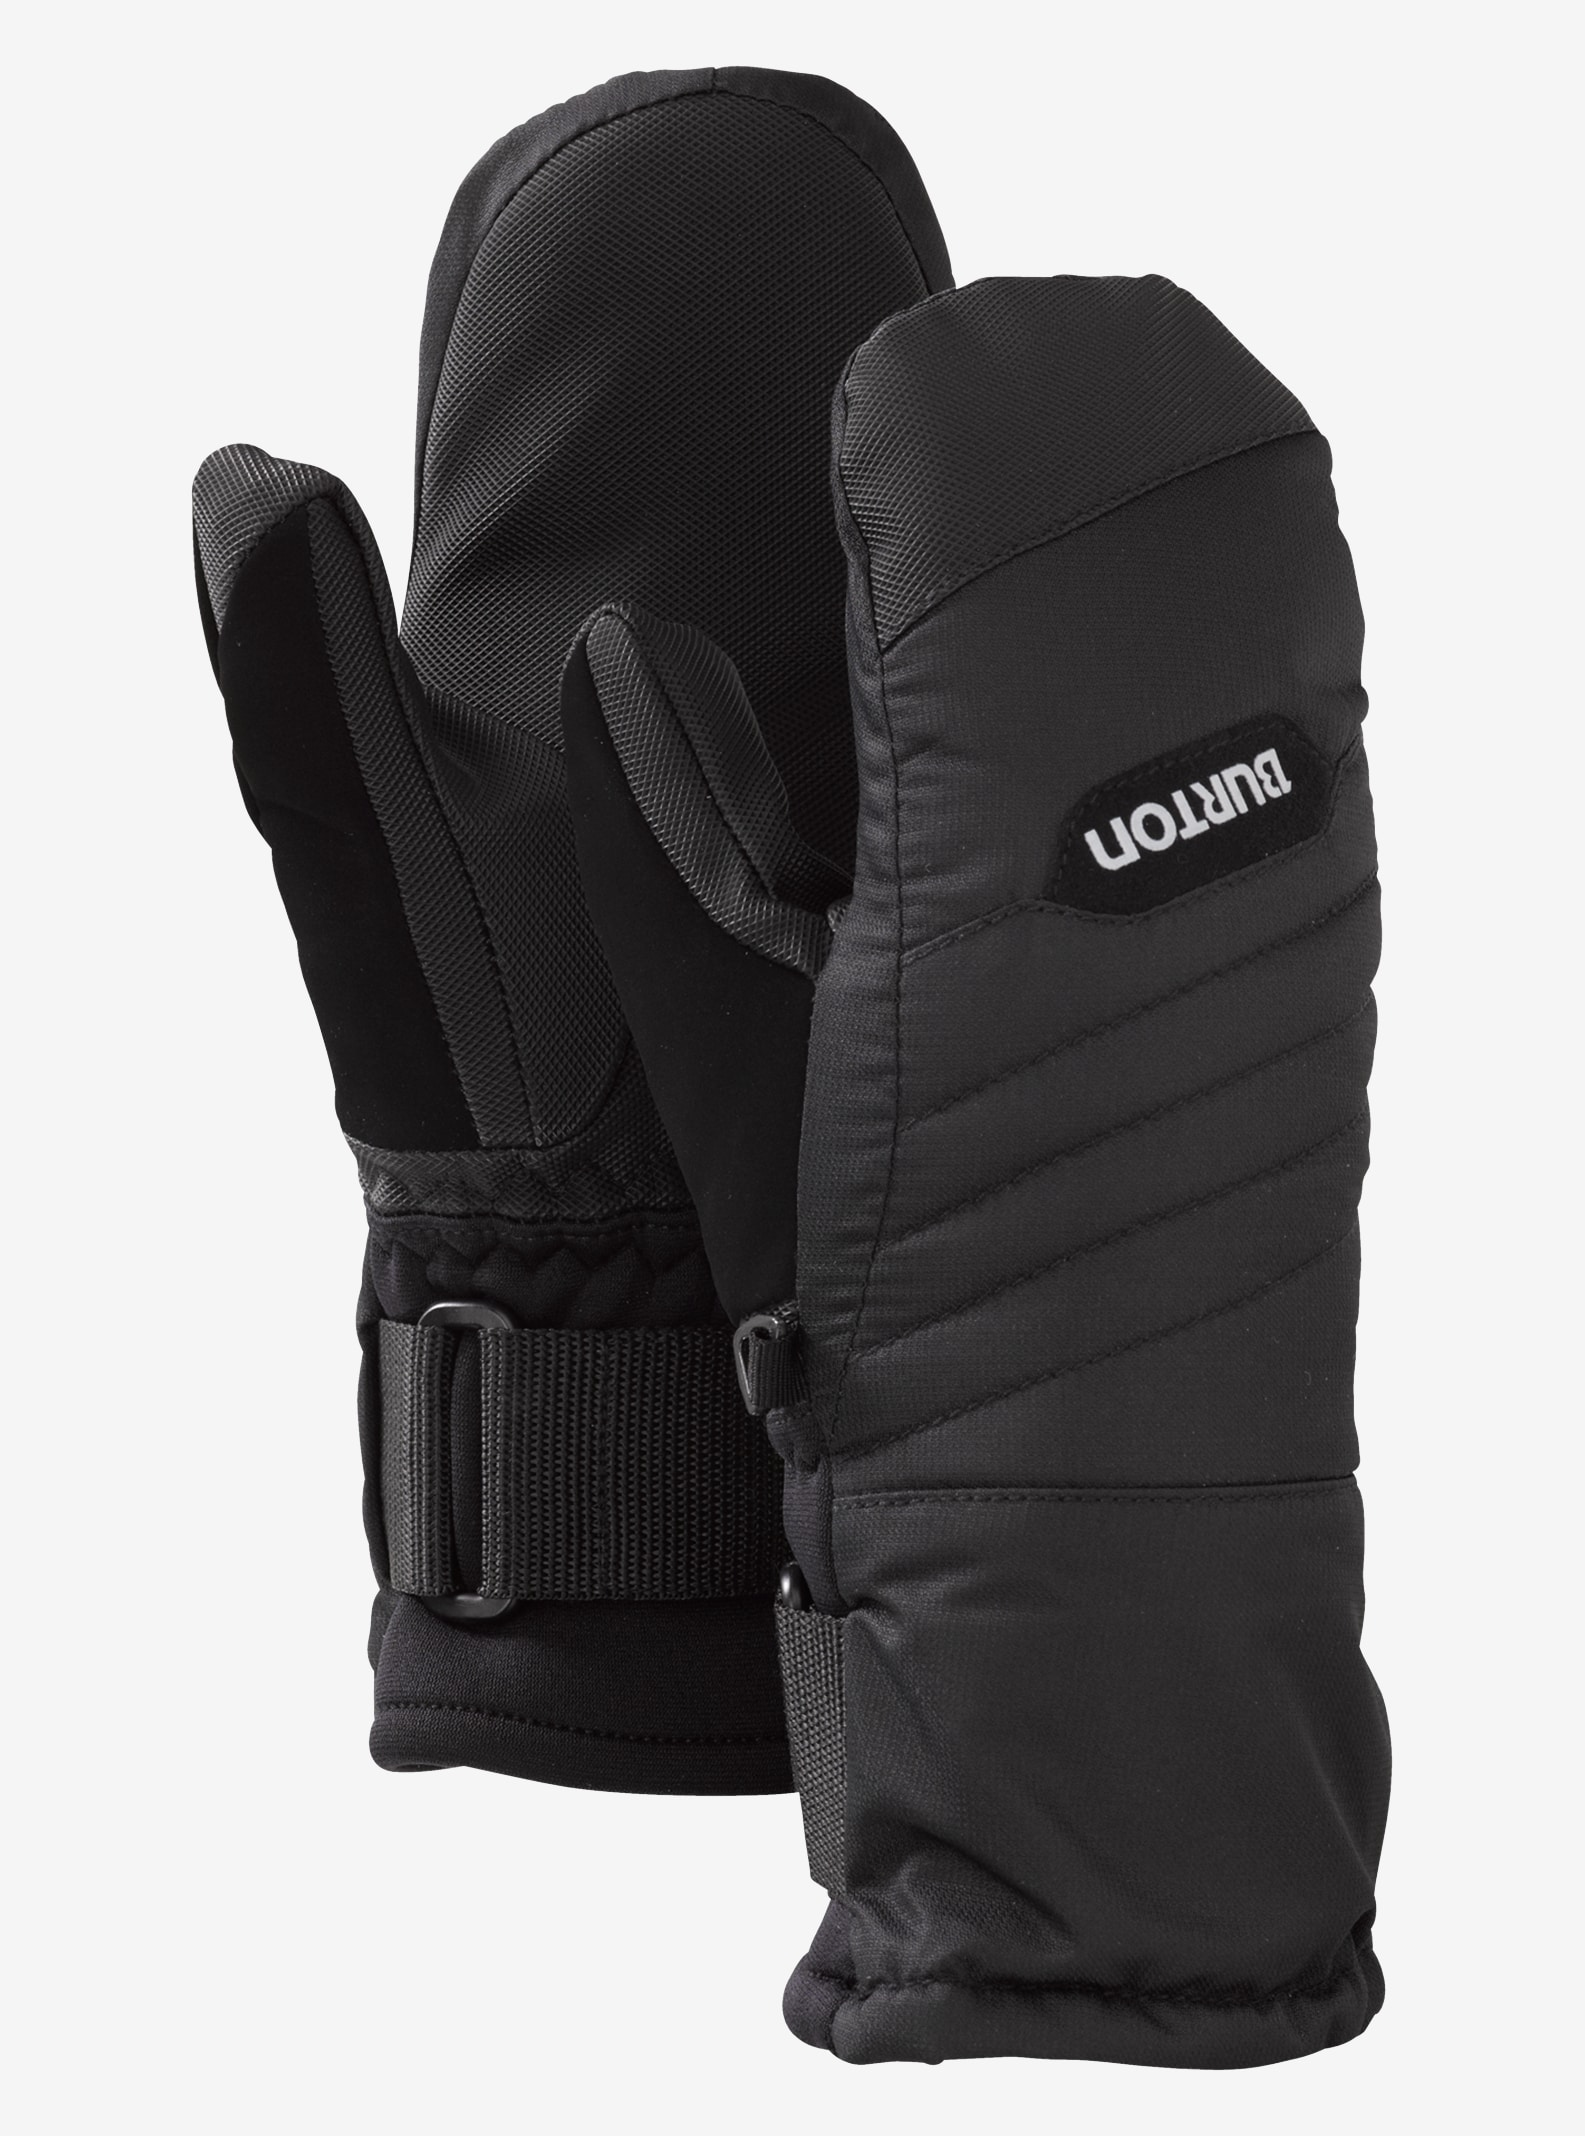 Kids' Burton Support Mitt shown in True Black